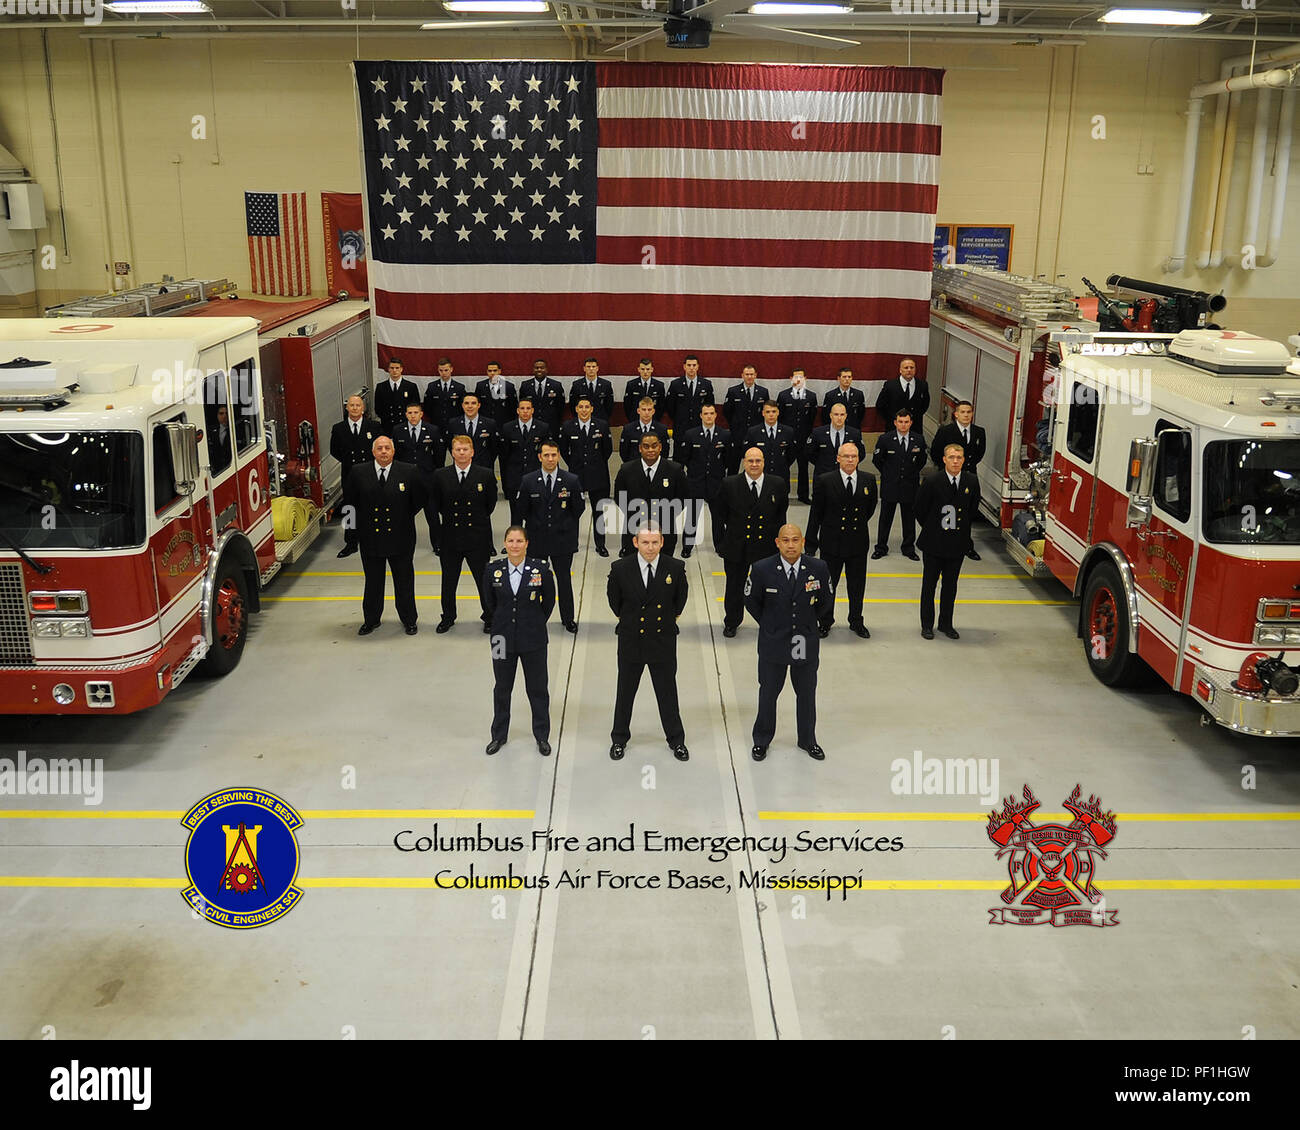 Congratulations To The 14th Civil Engineer Squadron Fire Emergency